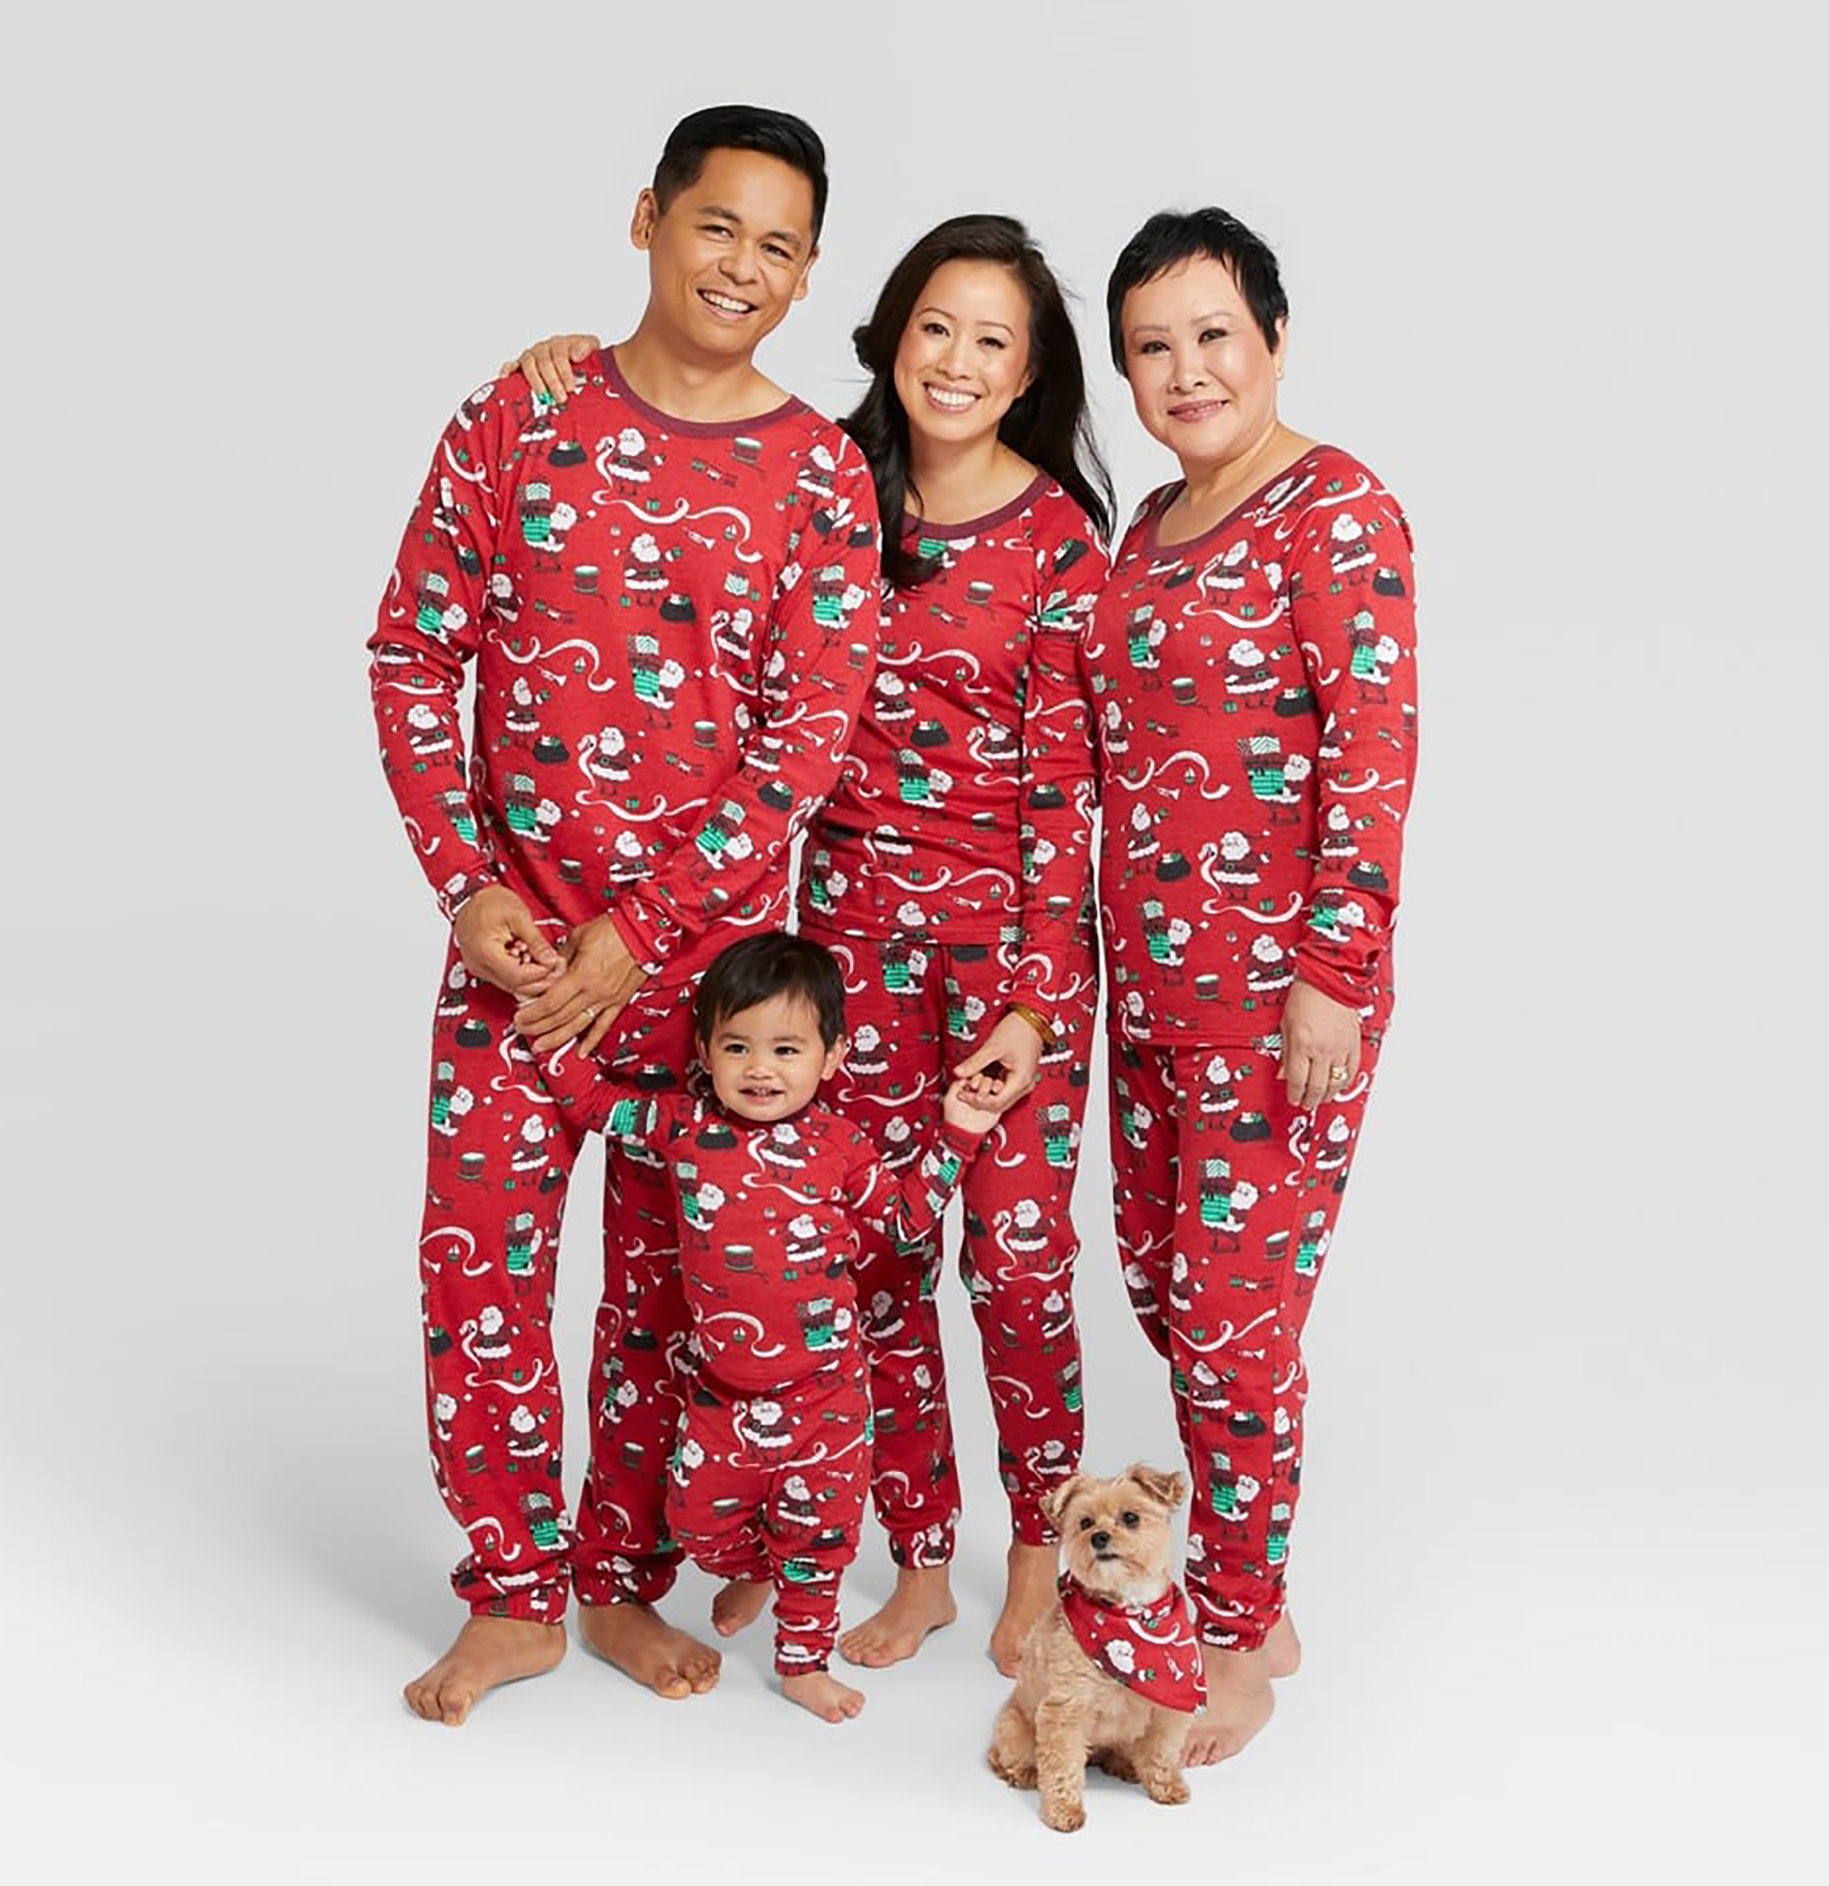 336e991c53 Best Matching Family Christmas Pajamas for 2018 - Family Holiday Pajamas